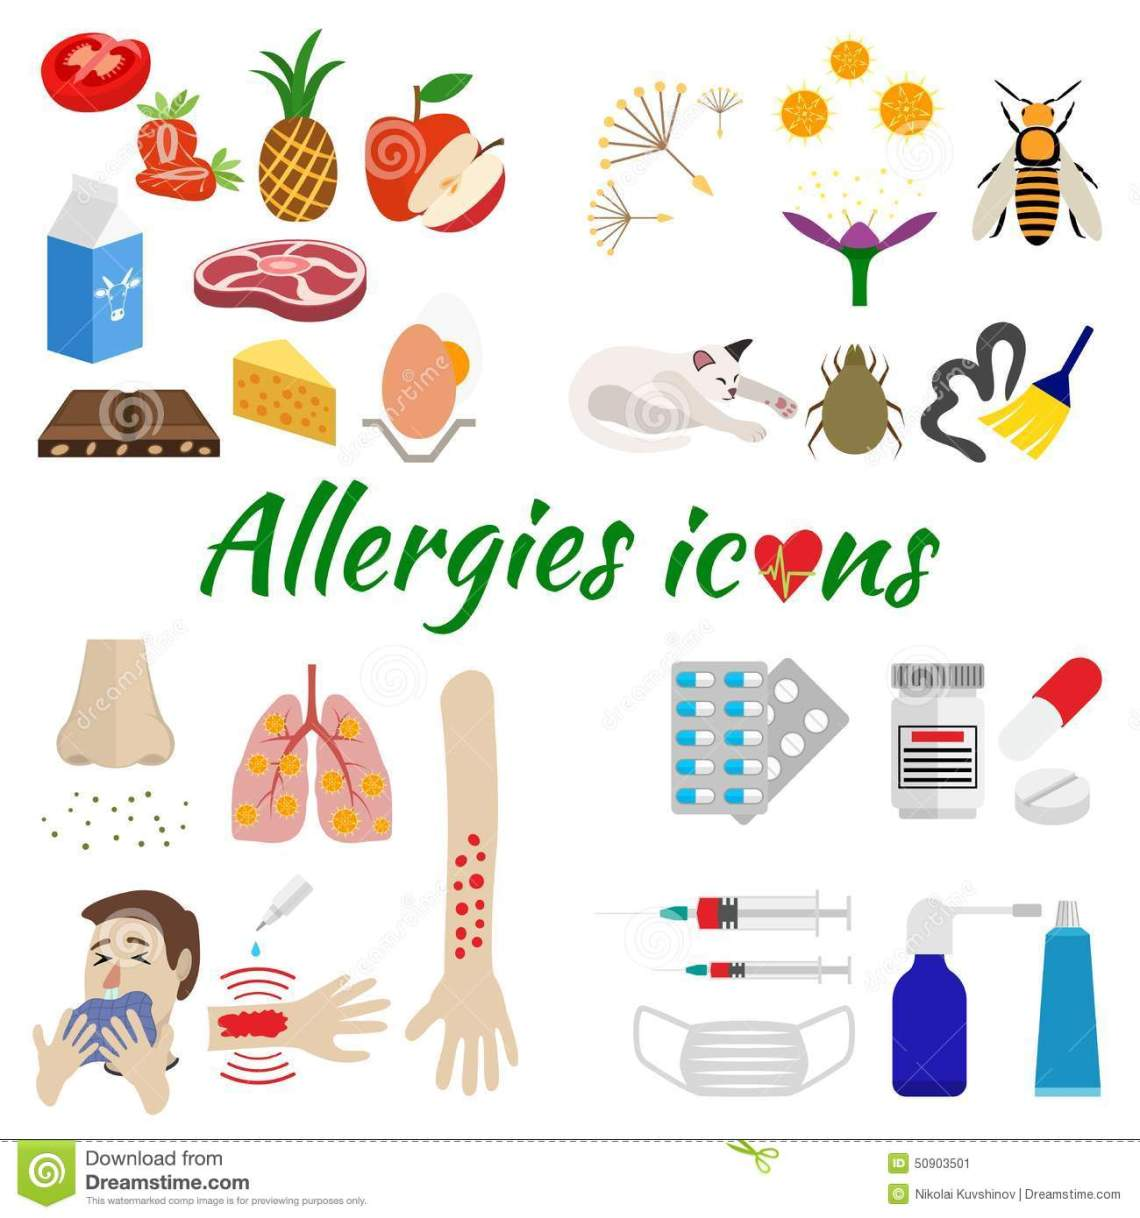 ... on allergens, symptoms and treatment. isolated on white background